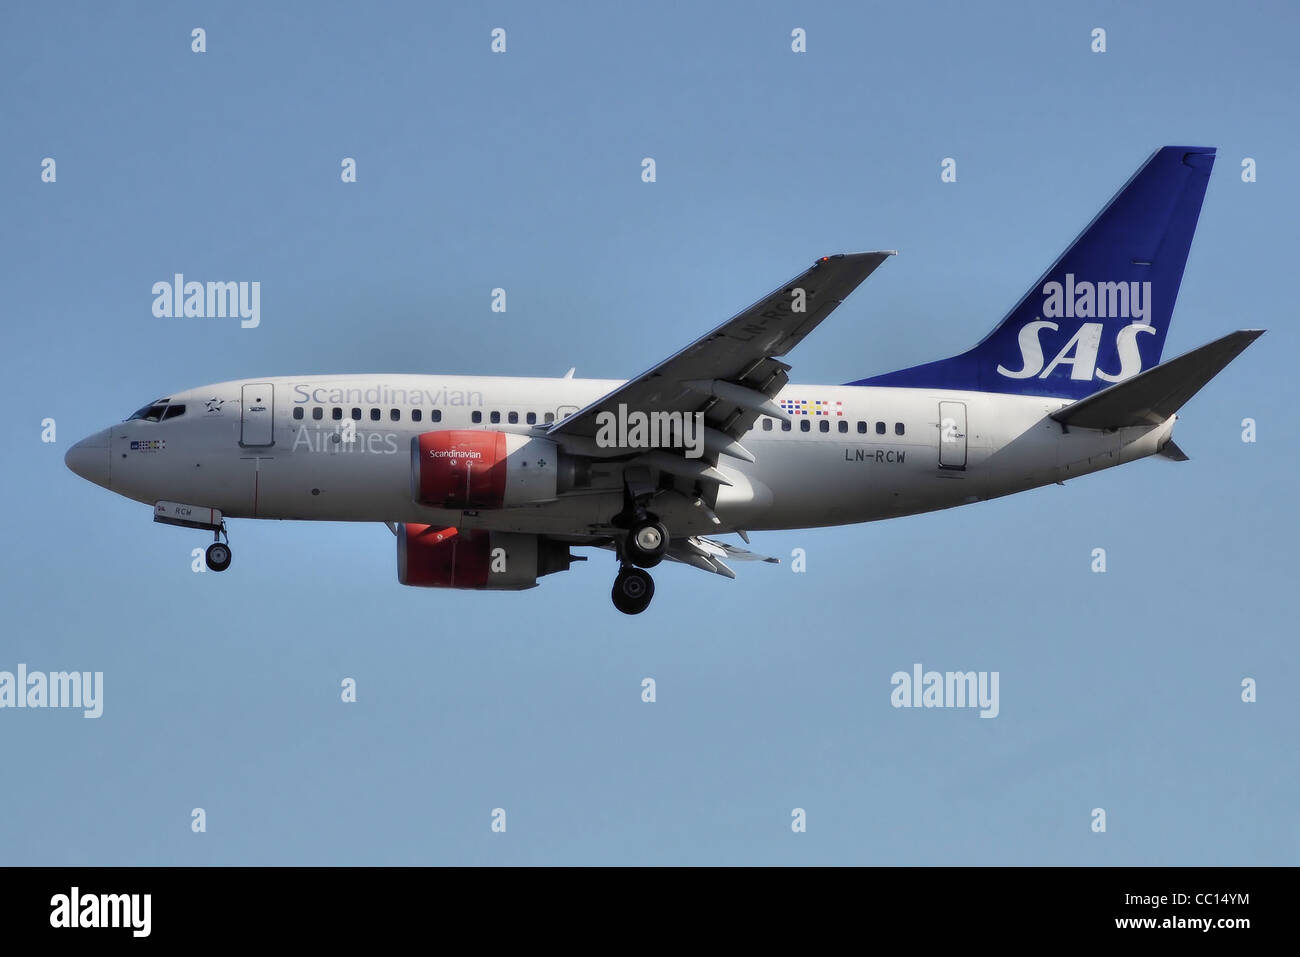 SAS Scandinavian Airlines Boeing 737-600 (LN-RCW) lands at London Heathrow Airport, England. - Stock Image